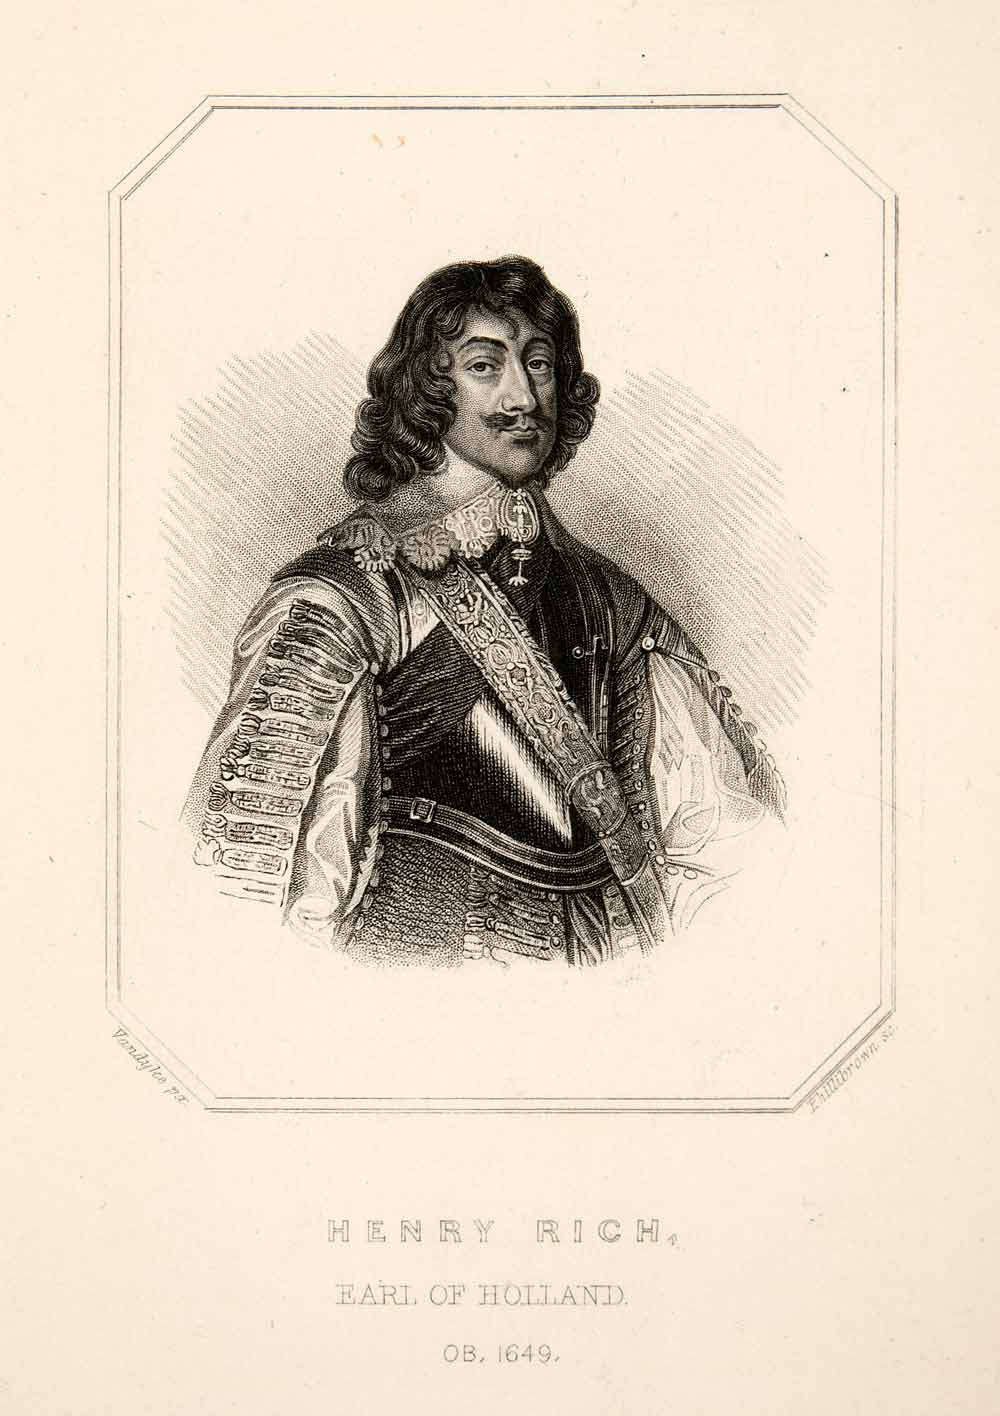 1875 Steel Engraving Henry Rich Earl Holland Armor Portrait England Royalty XEF3